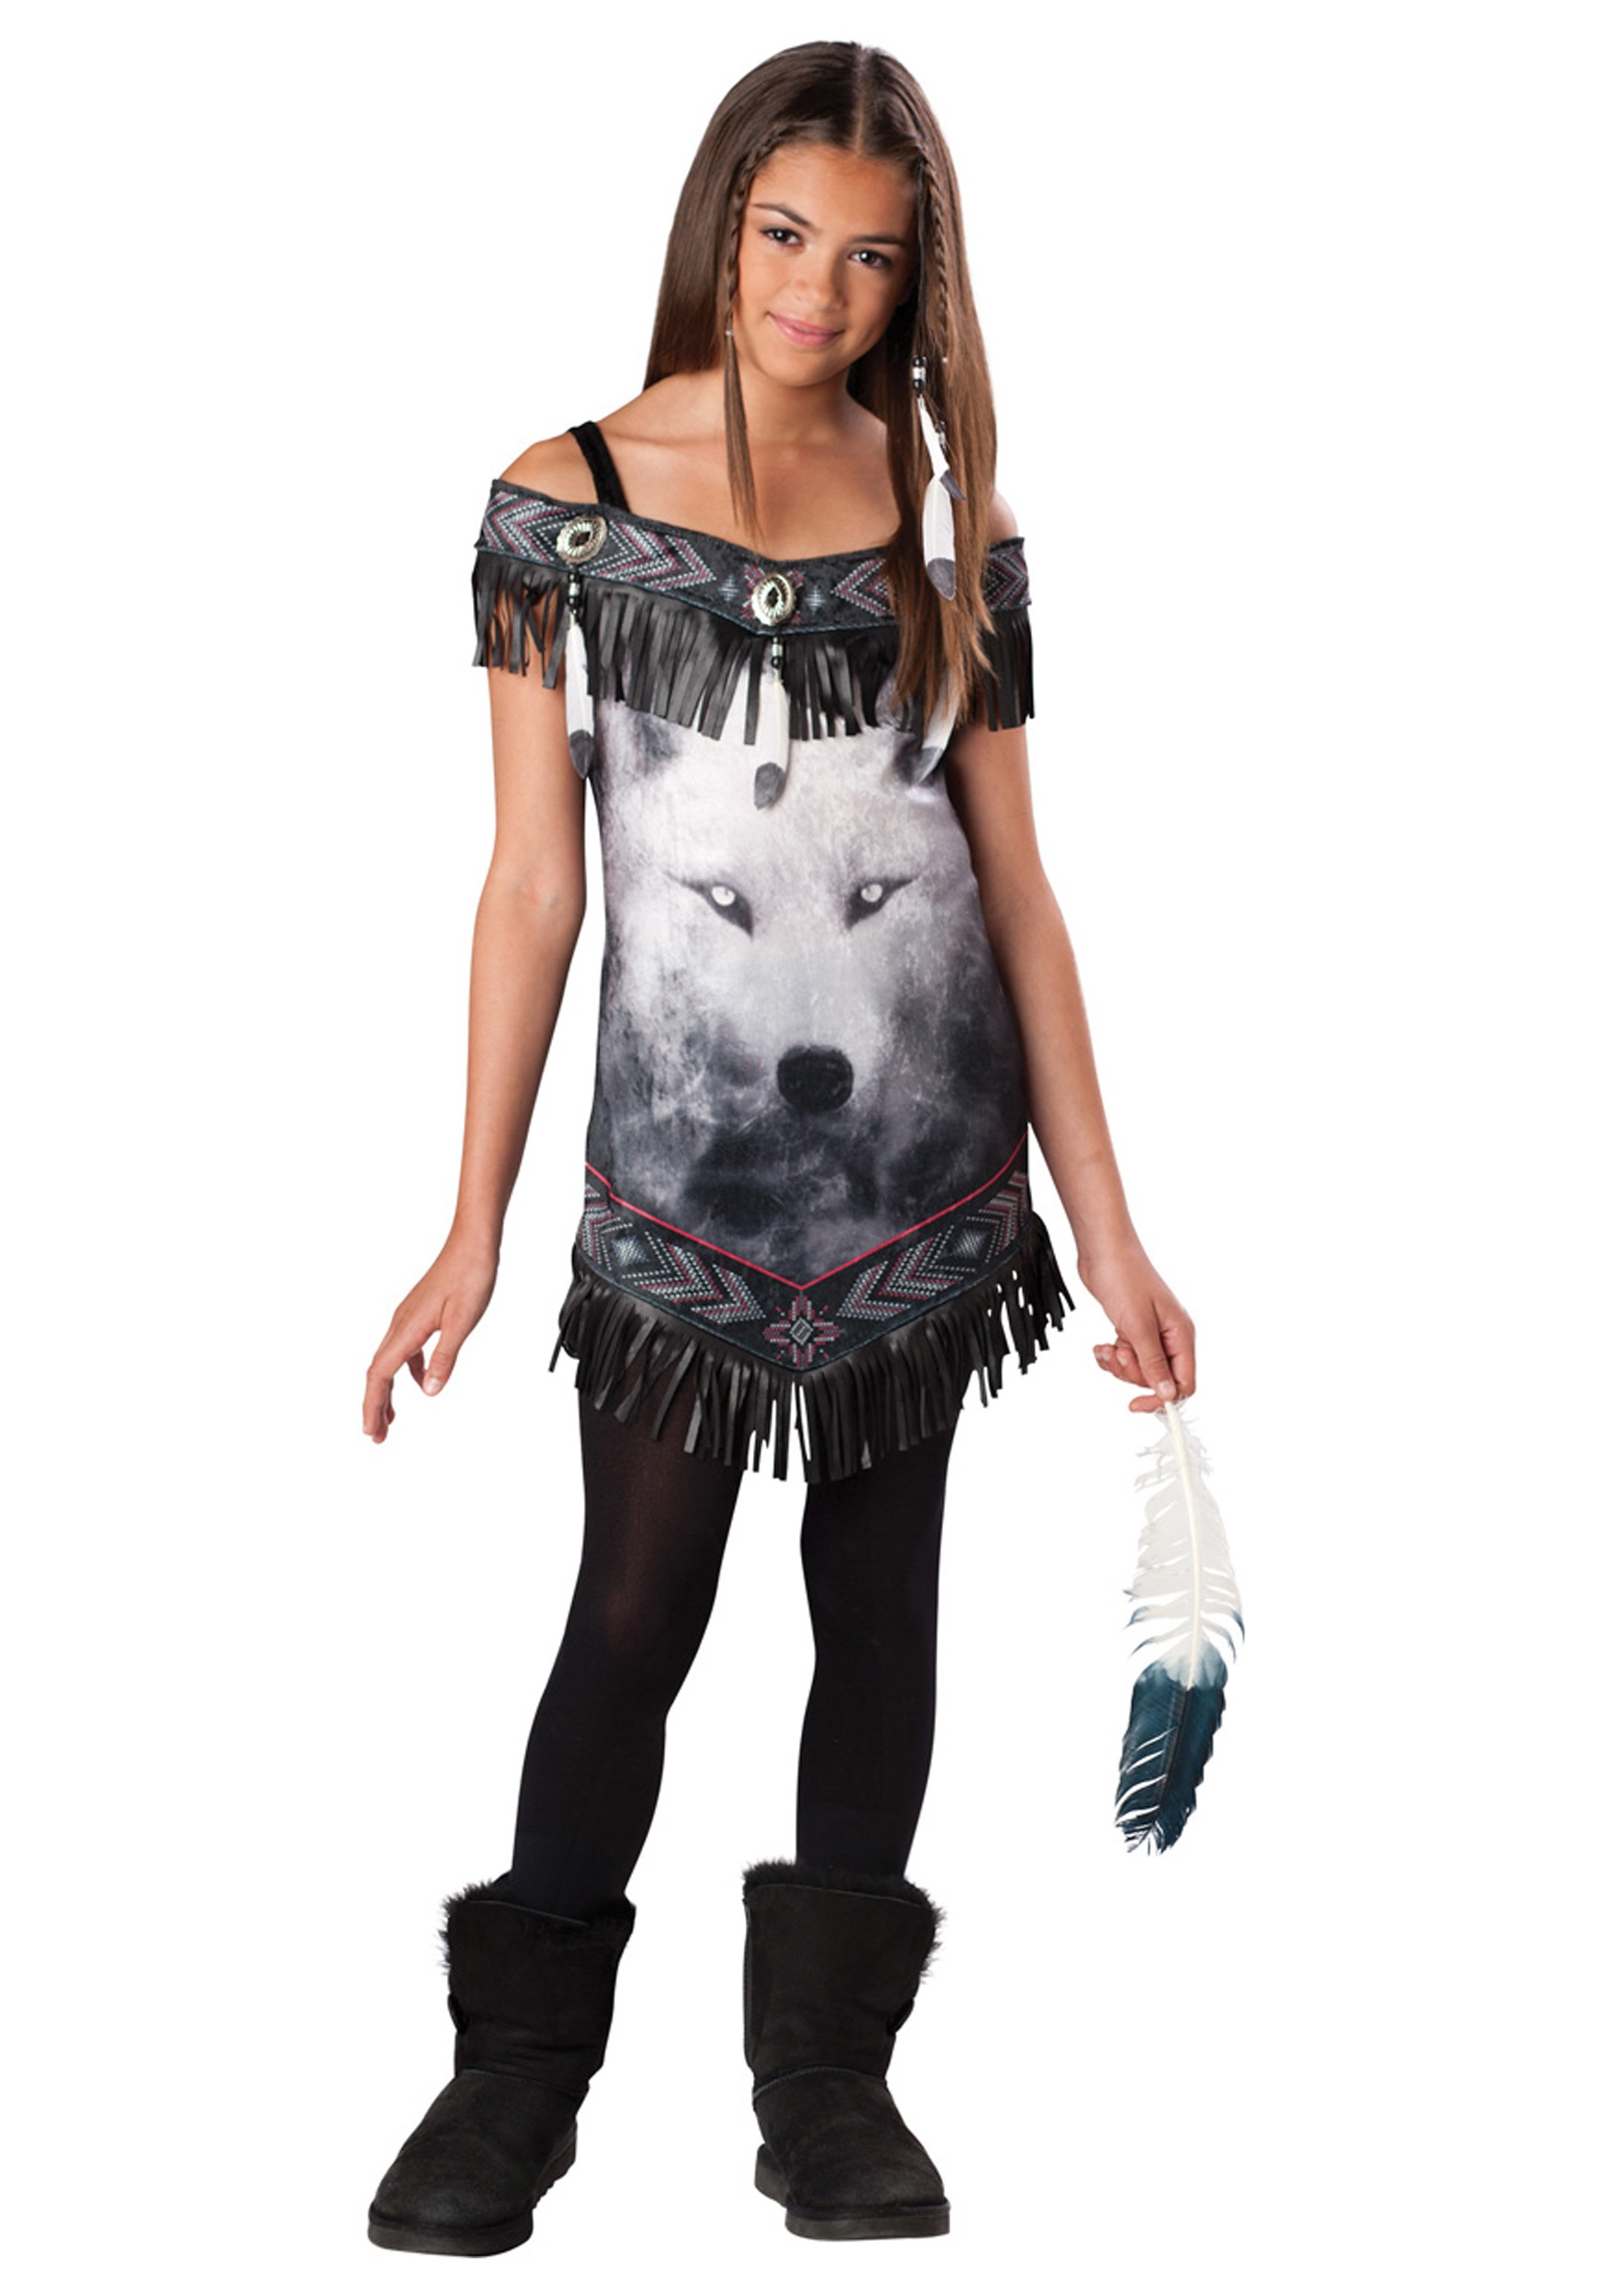 Tween Indian Tribal Spirit Costume  sc 1 st  Halloween Costumes & Tween Native American Tribal Spirit Costume